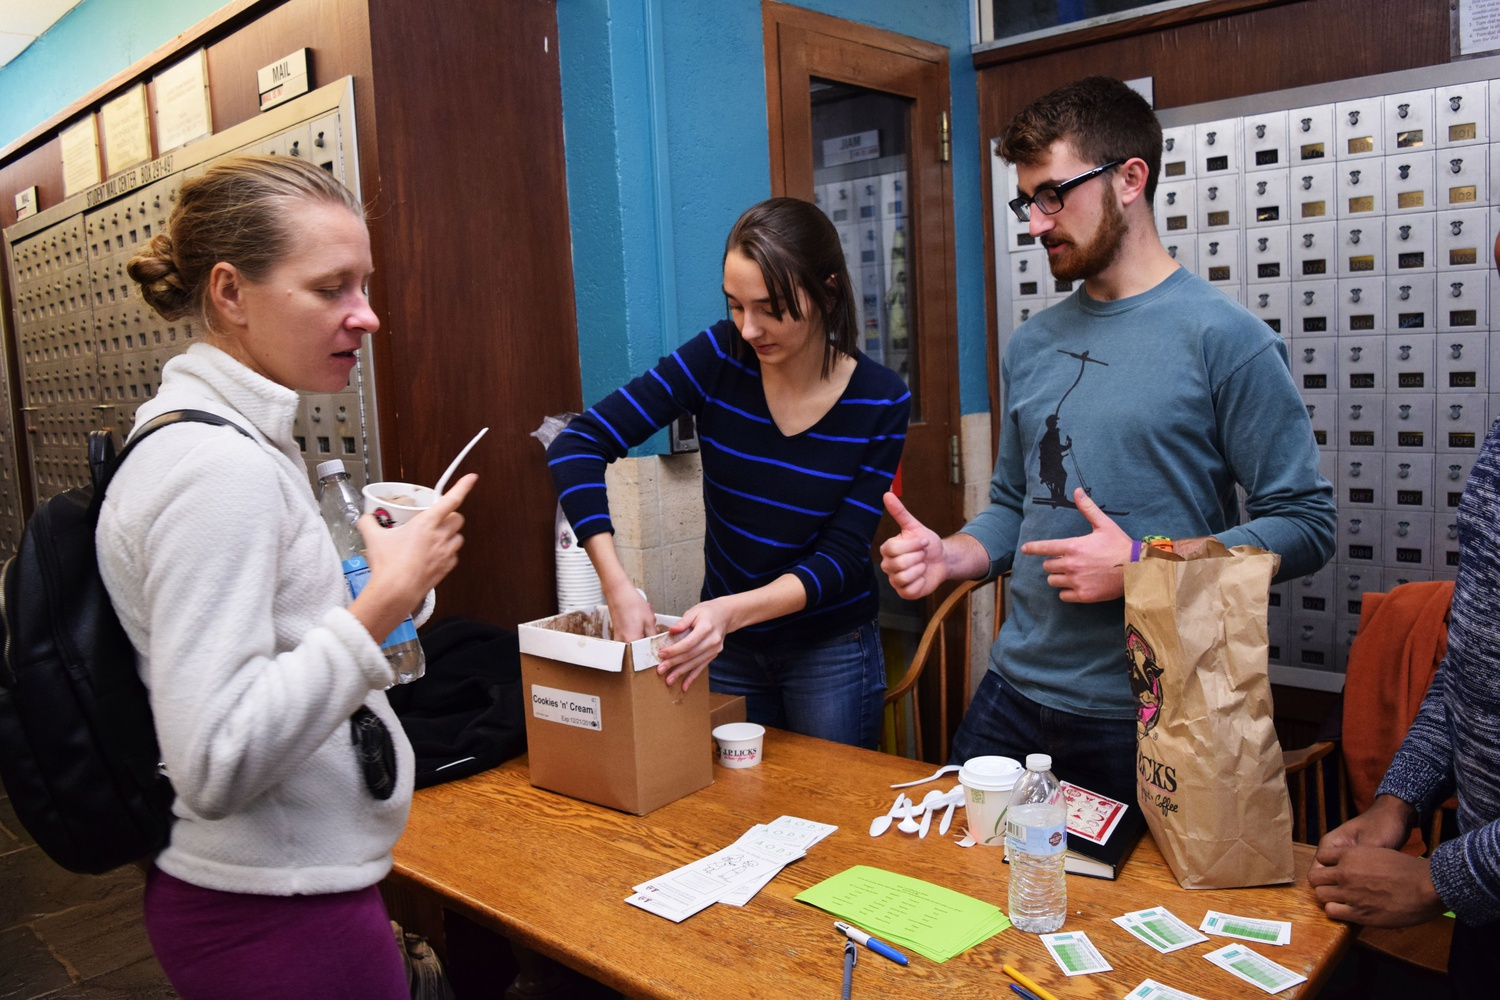 Drug Alcohol Peer Advisors Dann B. Stevens '19  and Eleni M. Kovatsis '17 educate students about alcohol drinking limits while handing out ice cream Tuesday night in Quincy House.